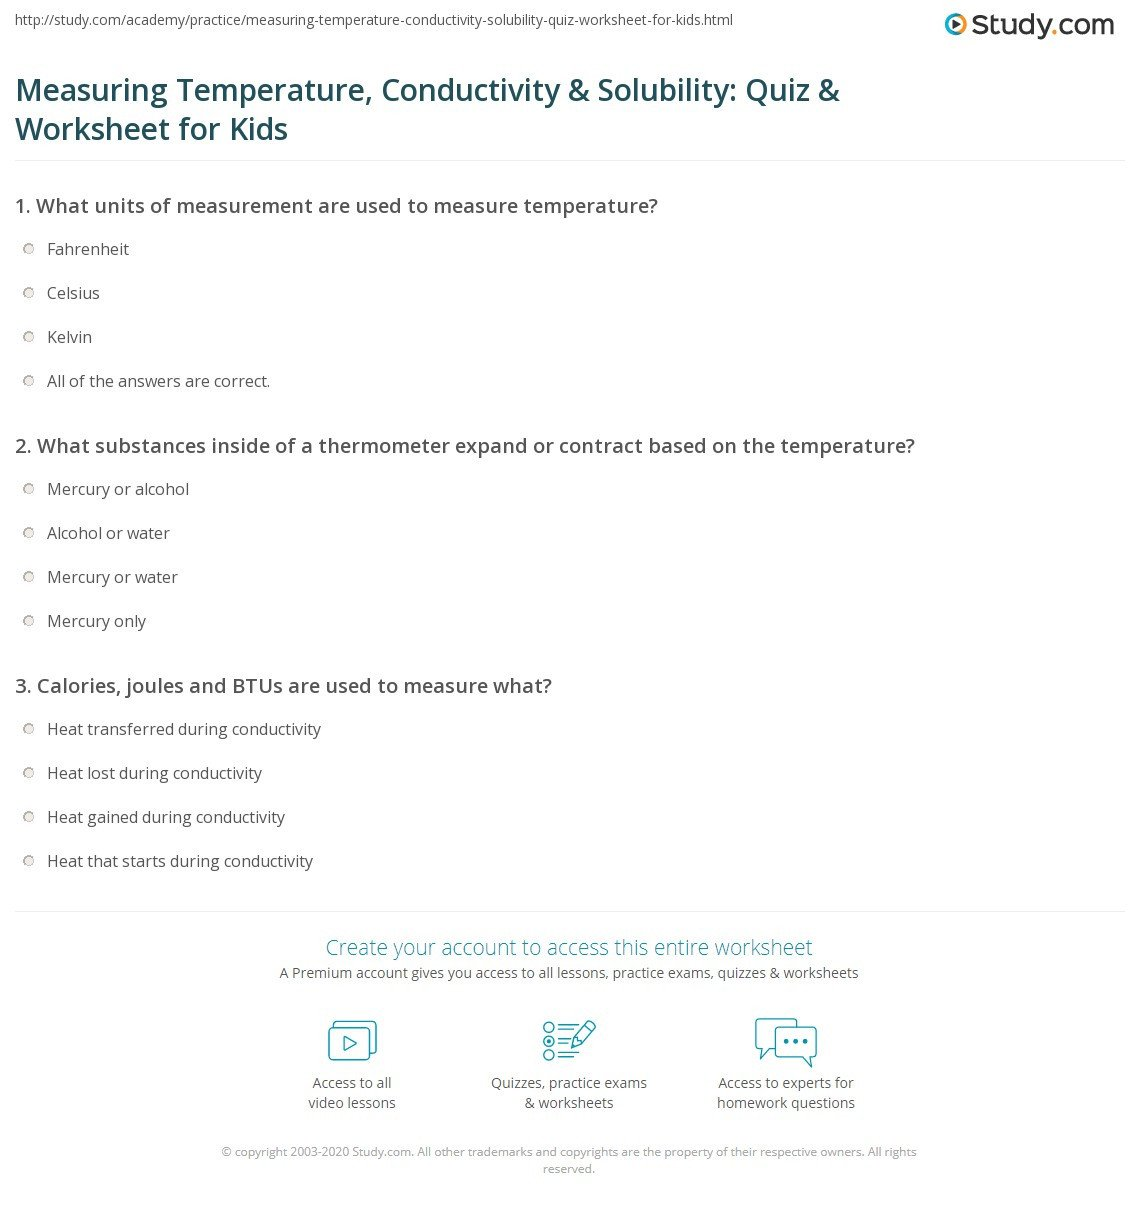 Measurement Temperature Worksheets Measuring Temperature Conductivity & solubility Quiz